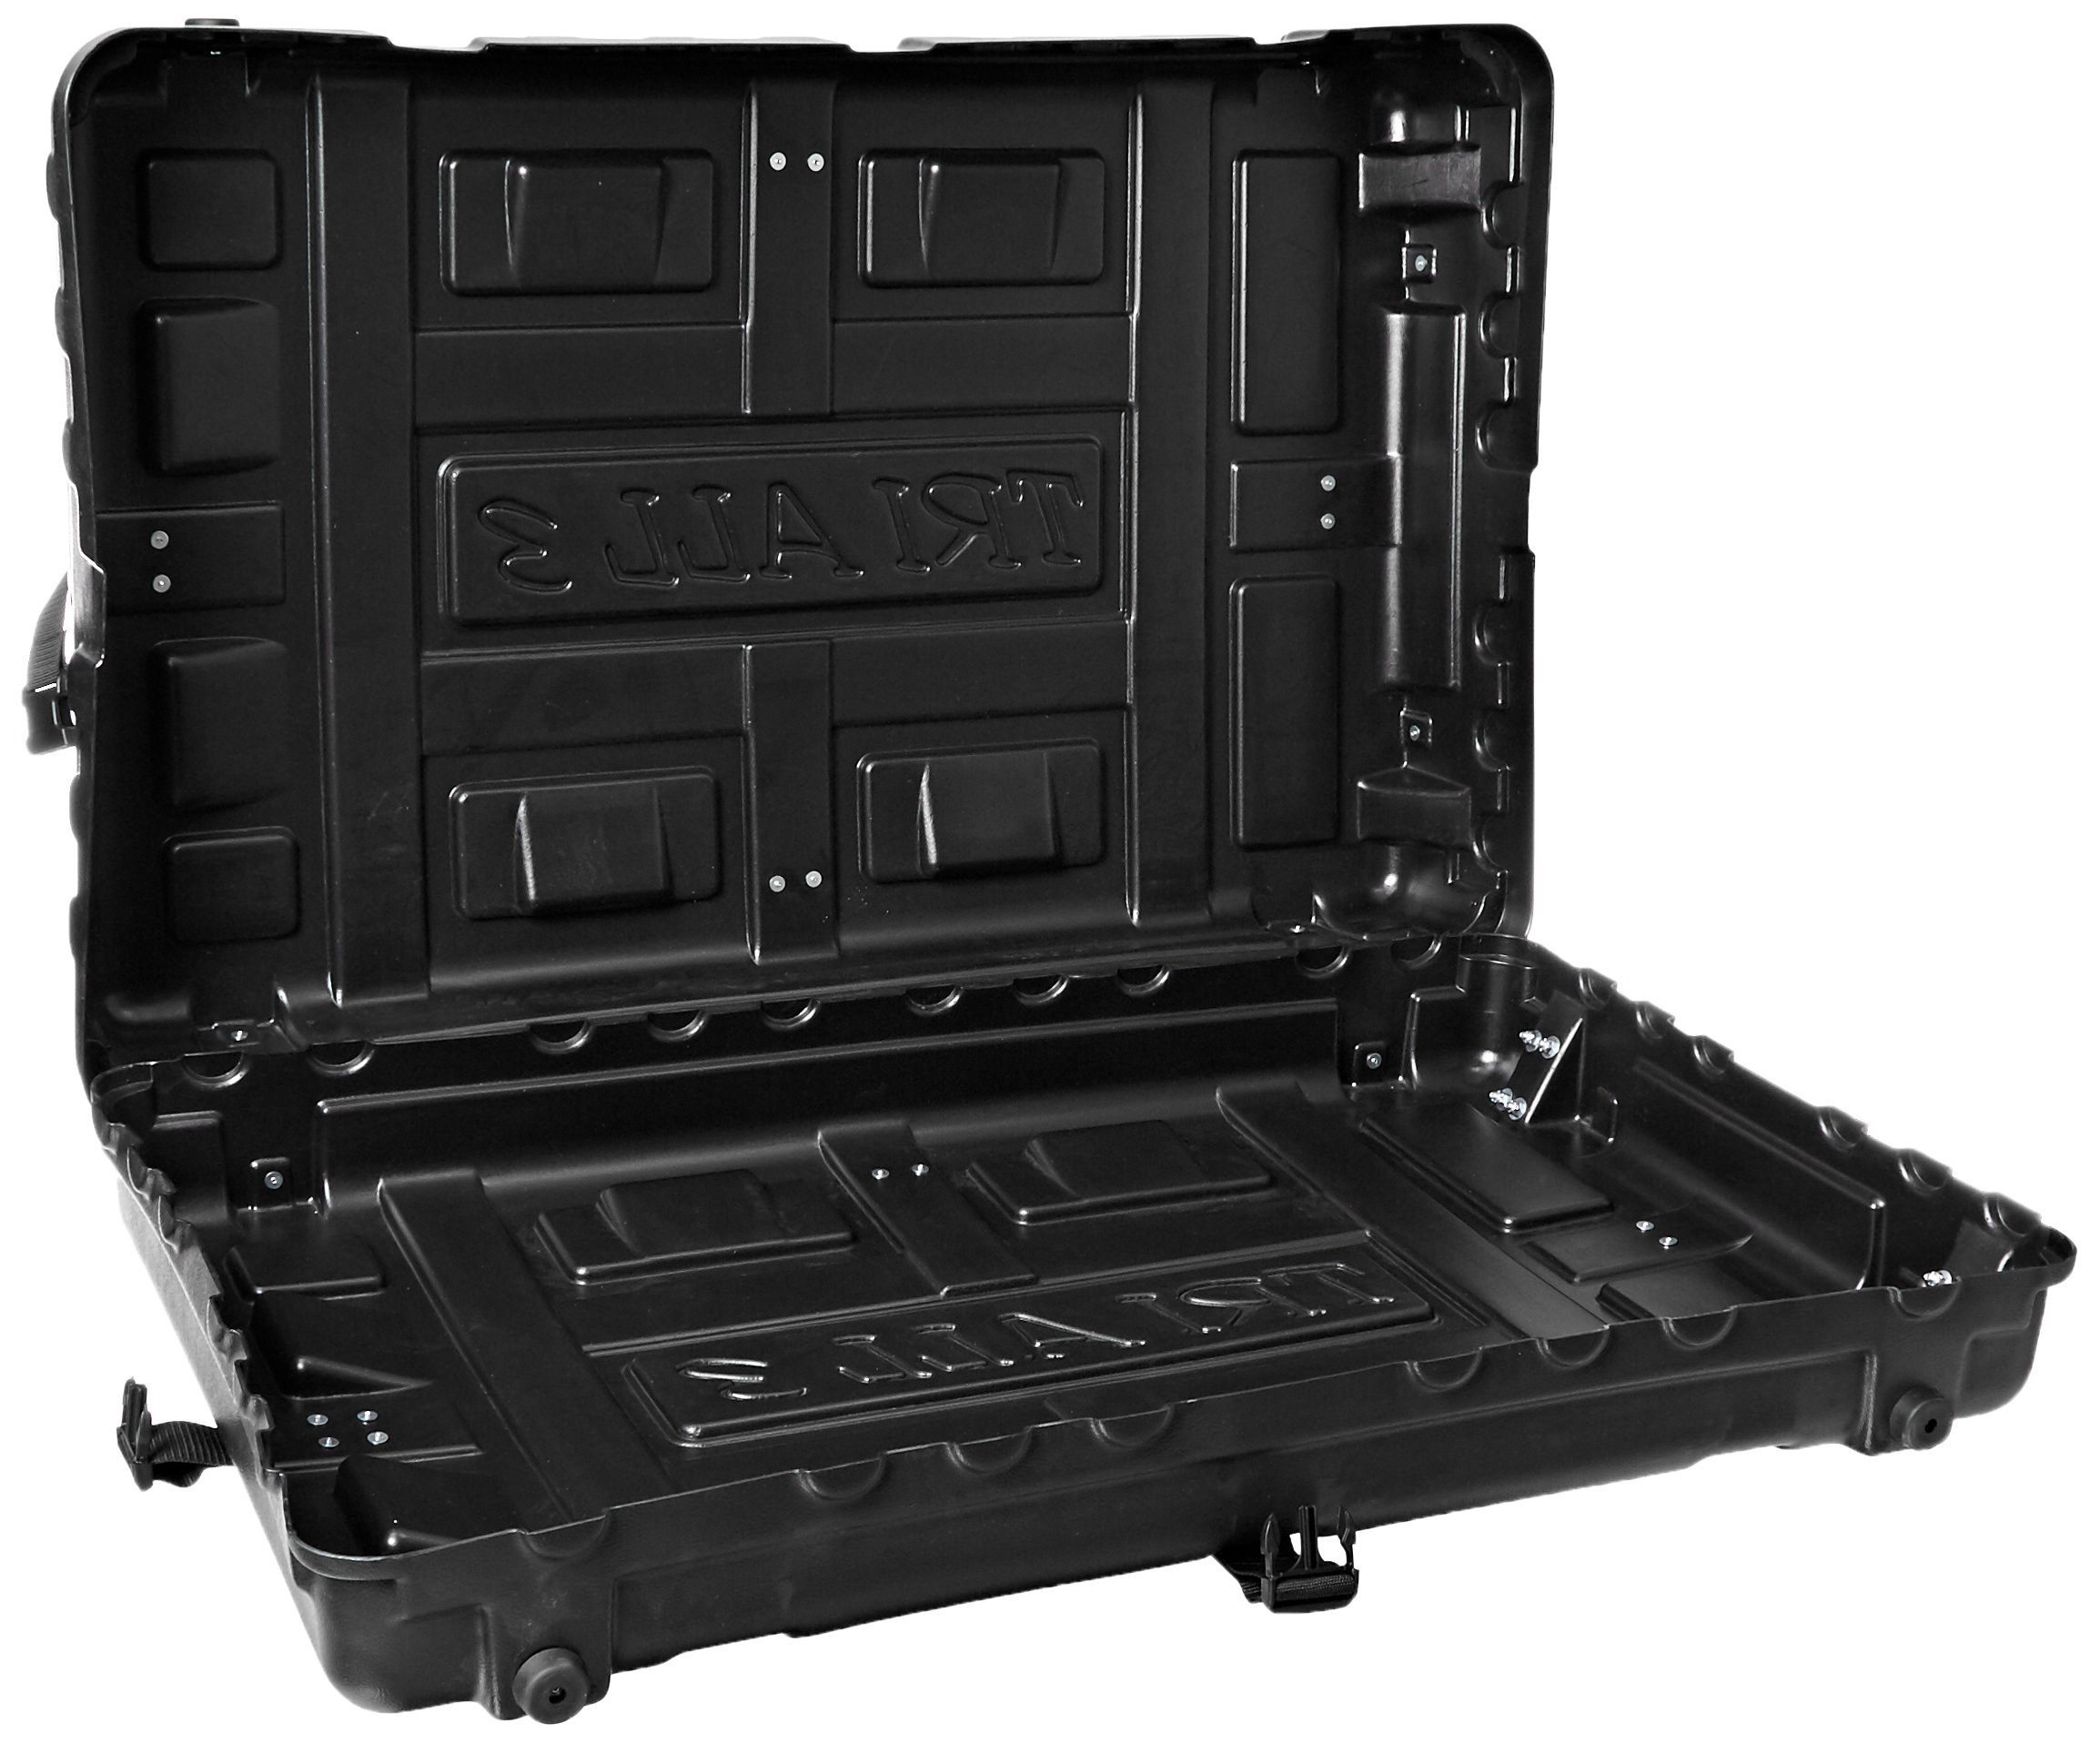 Tri All 3 Sports Clam Shell Bike Case by Tri All 3 Sports (Image #3)